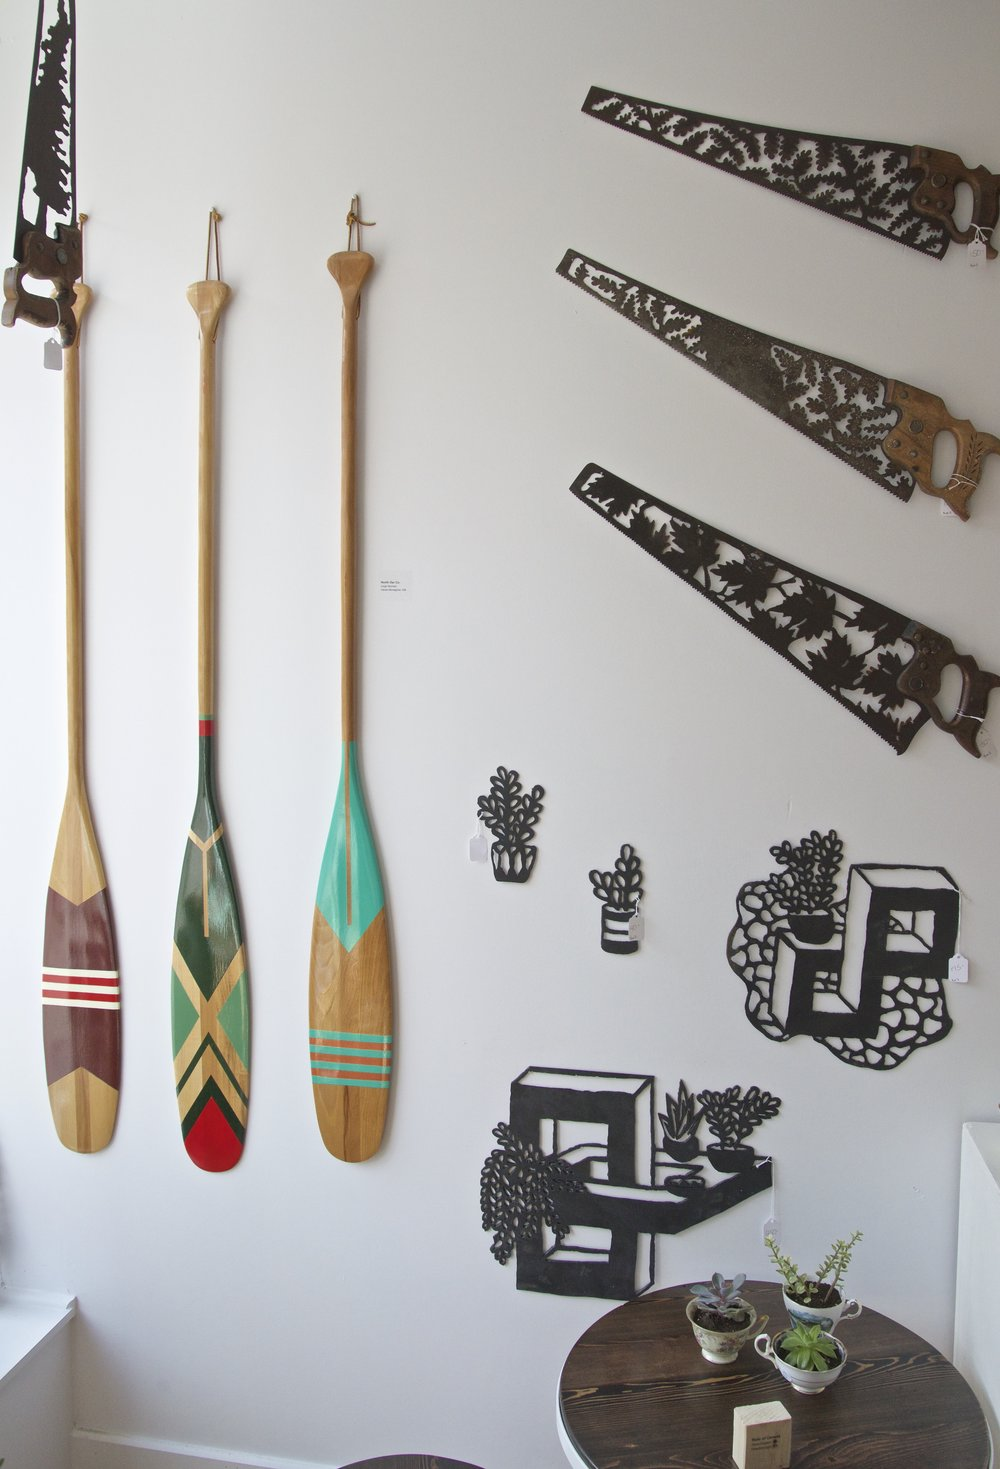 A selection of pieces from North Oar co. & Burn Island.